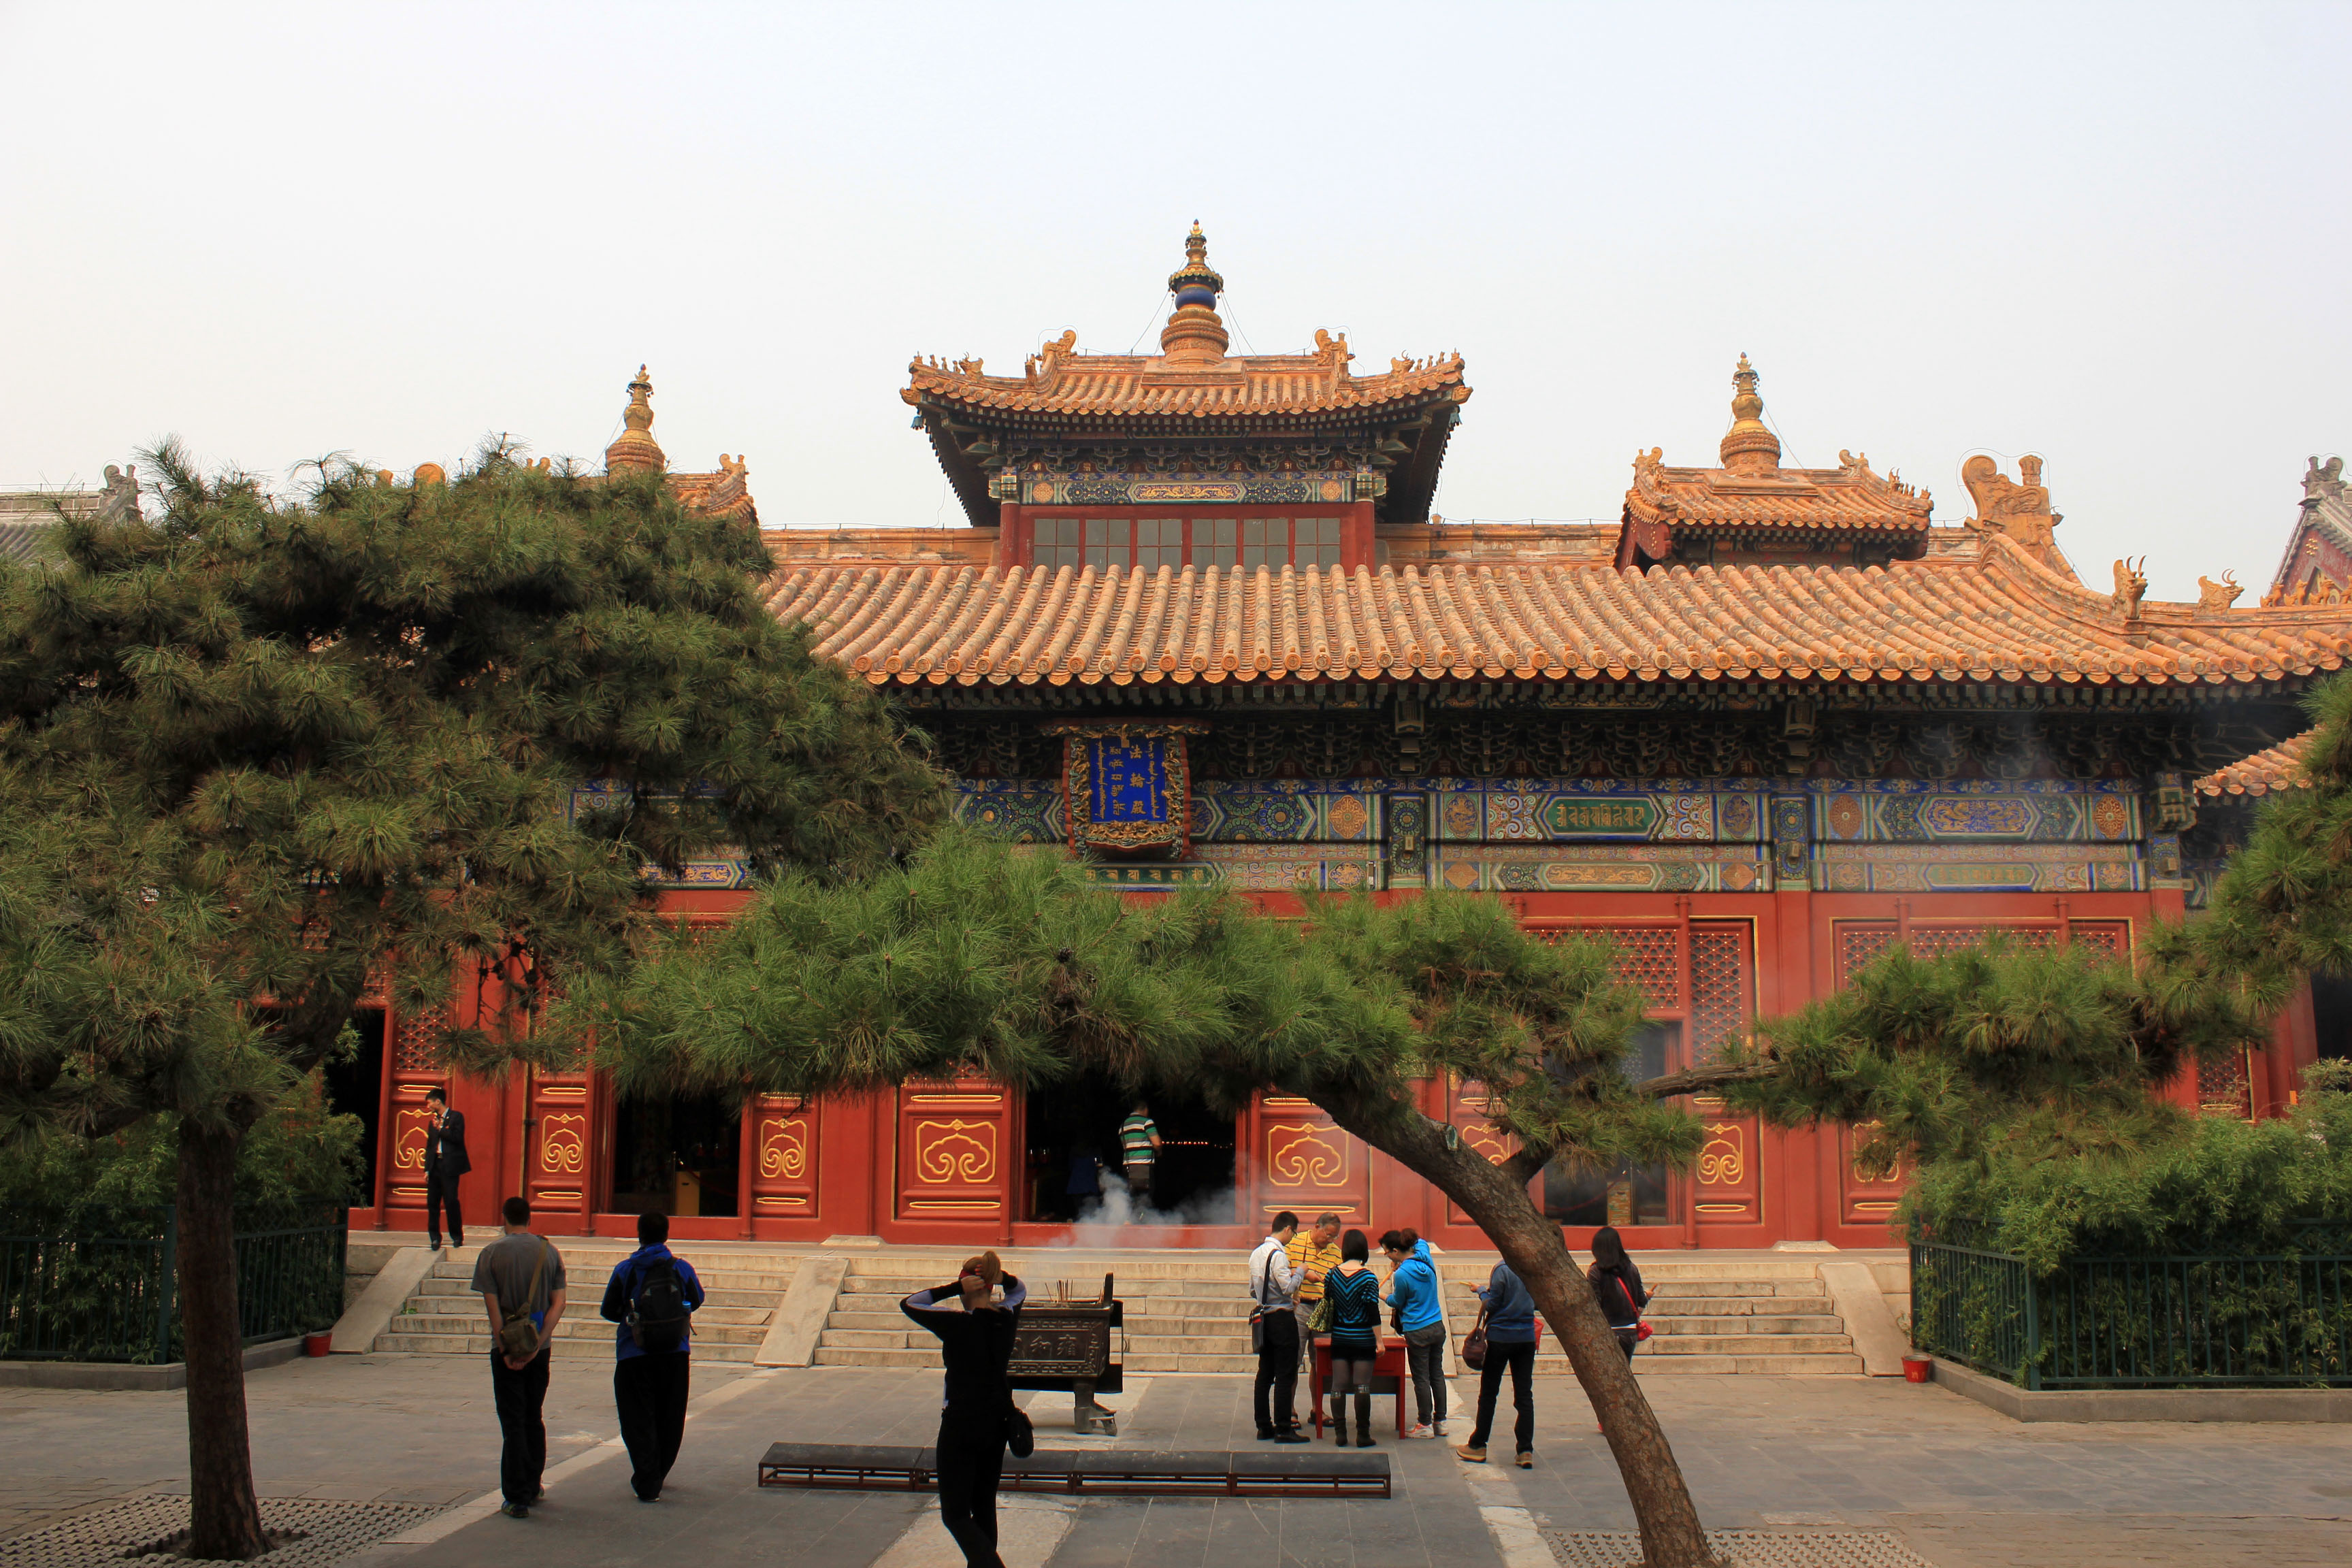 Exterior of the Forbidden City, Beijing, China